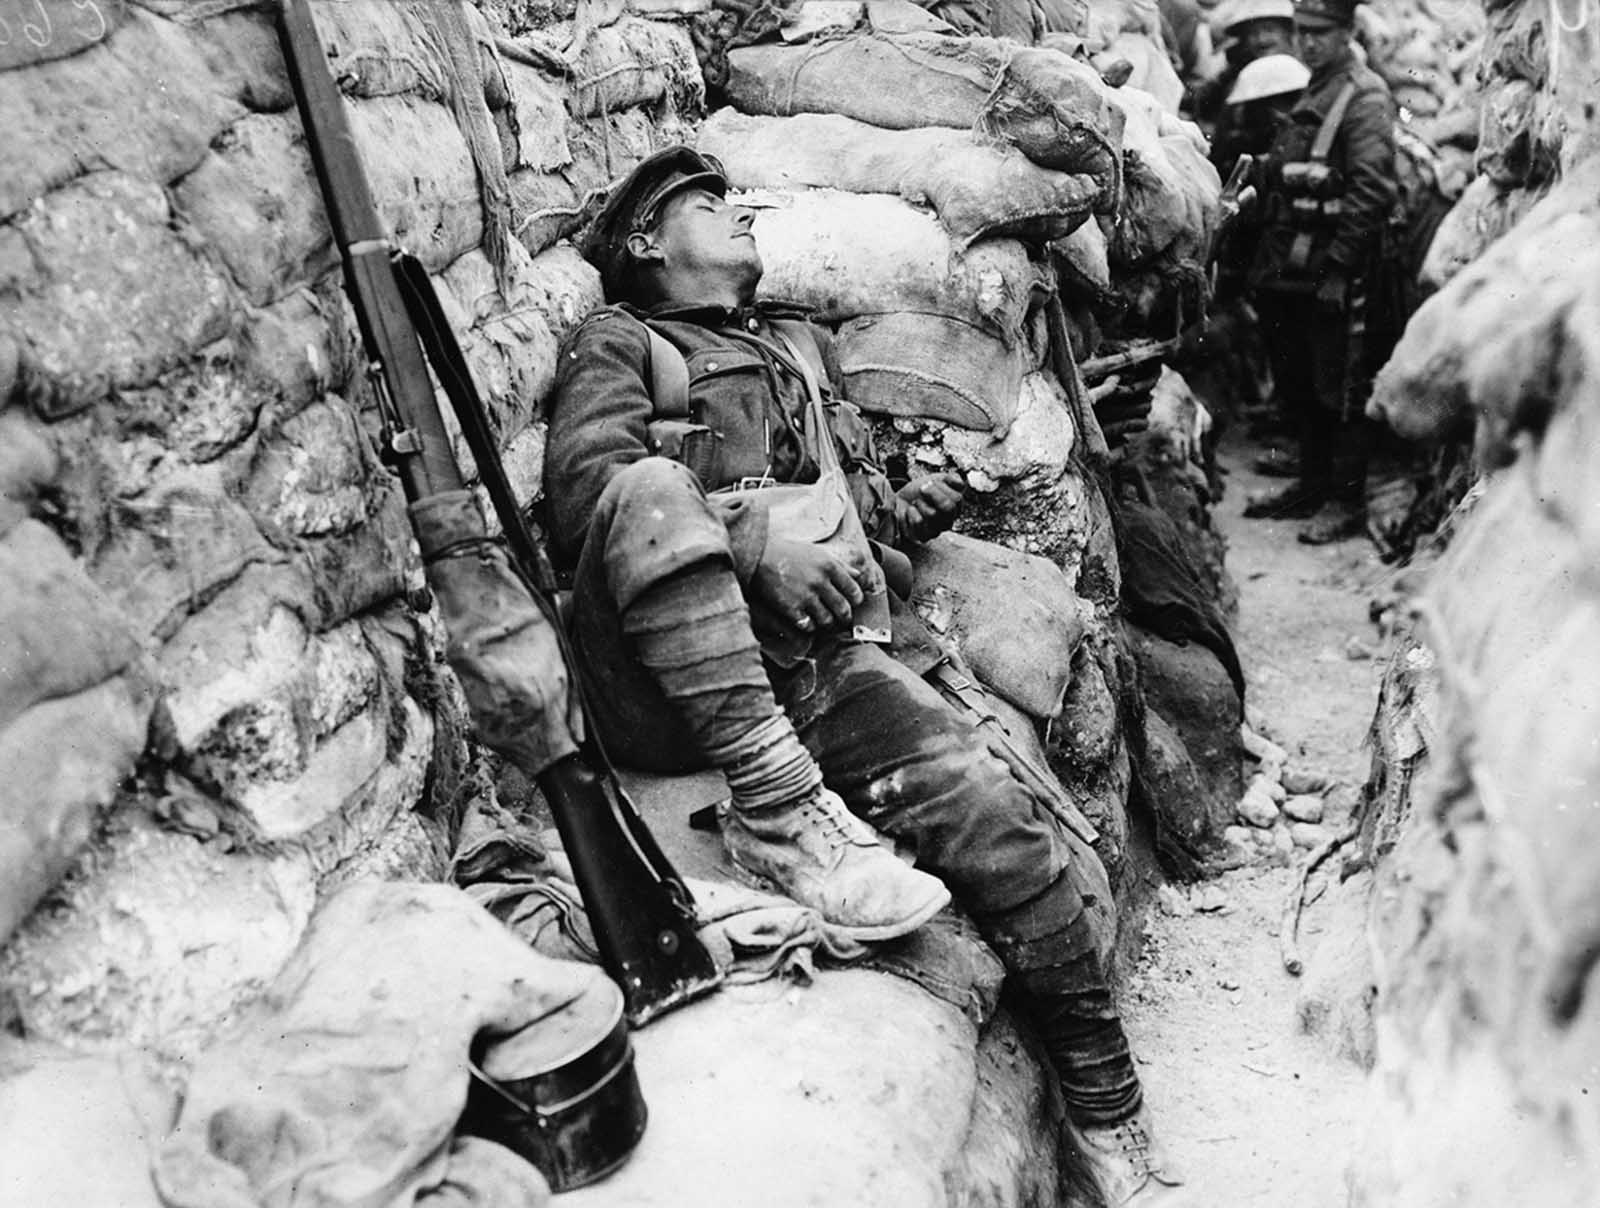 Soldier's comrades watch him as he sleeps, near Thievpal, France. Soldiers are standing in a very deep, narrow trench, the walls of which are entirely lined with sandbags. At the far end of the trench a line of soldiers are squashed up looking over each others' shoulders at the sleeping man.